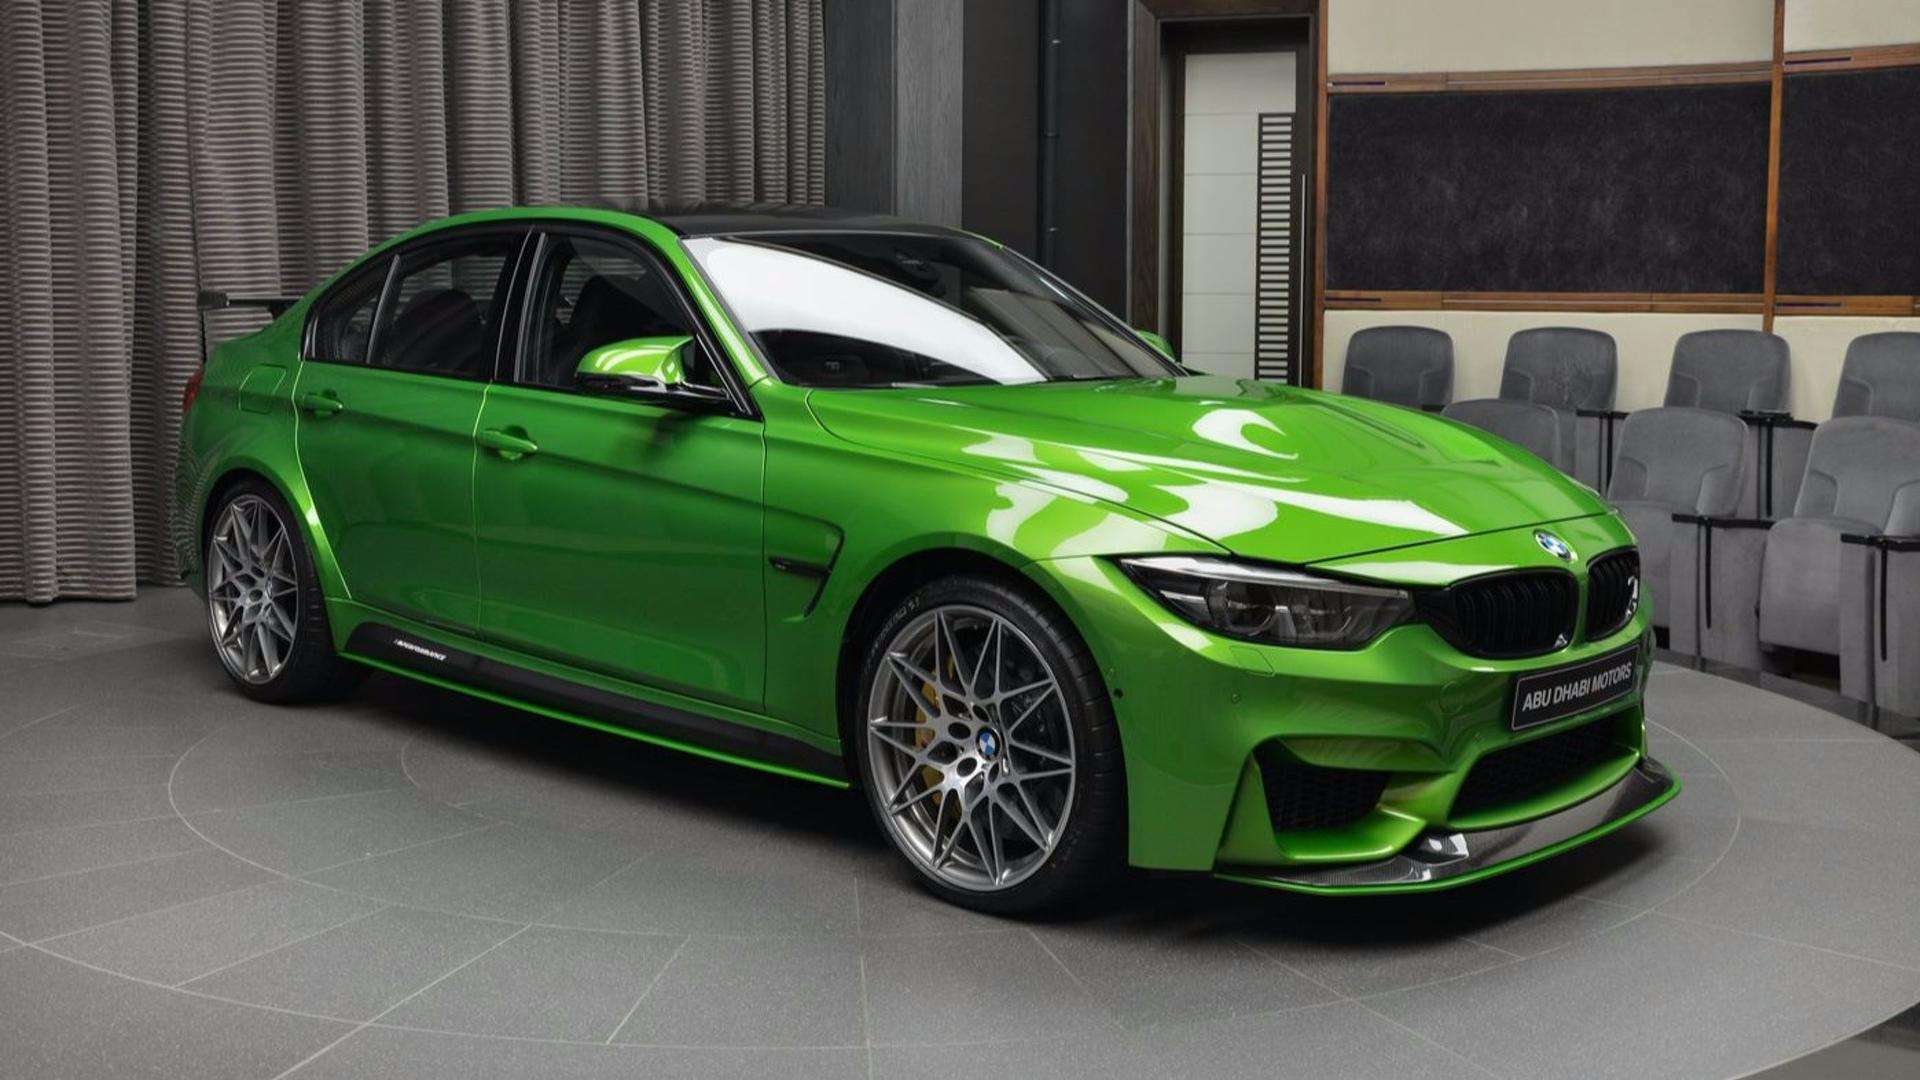 bmw m3 coupe green - photo #14